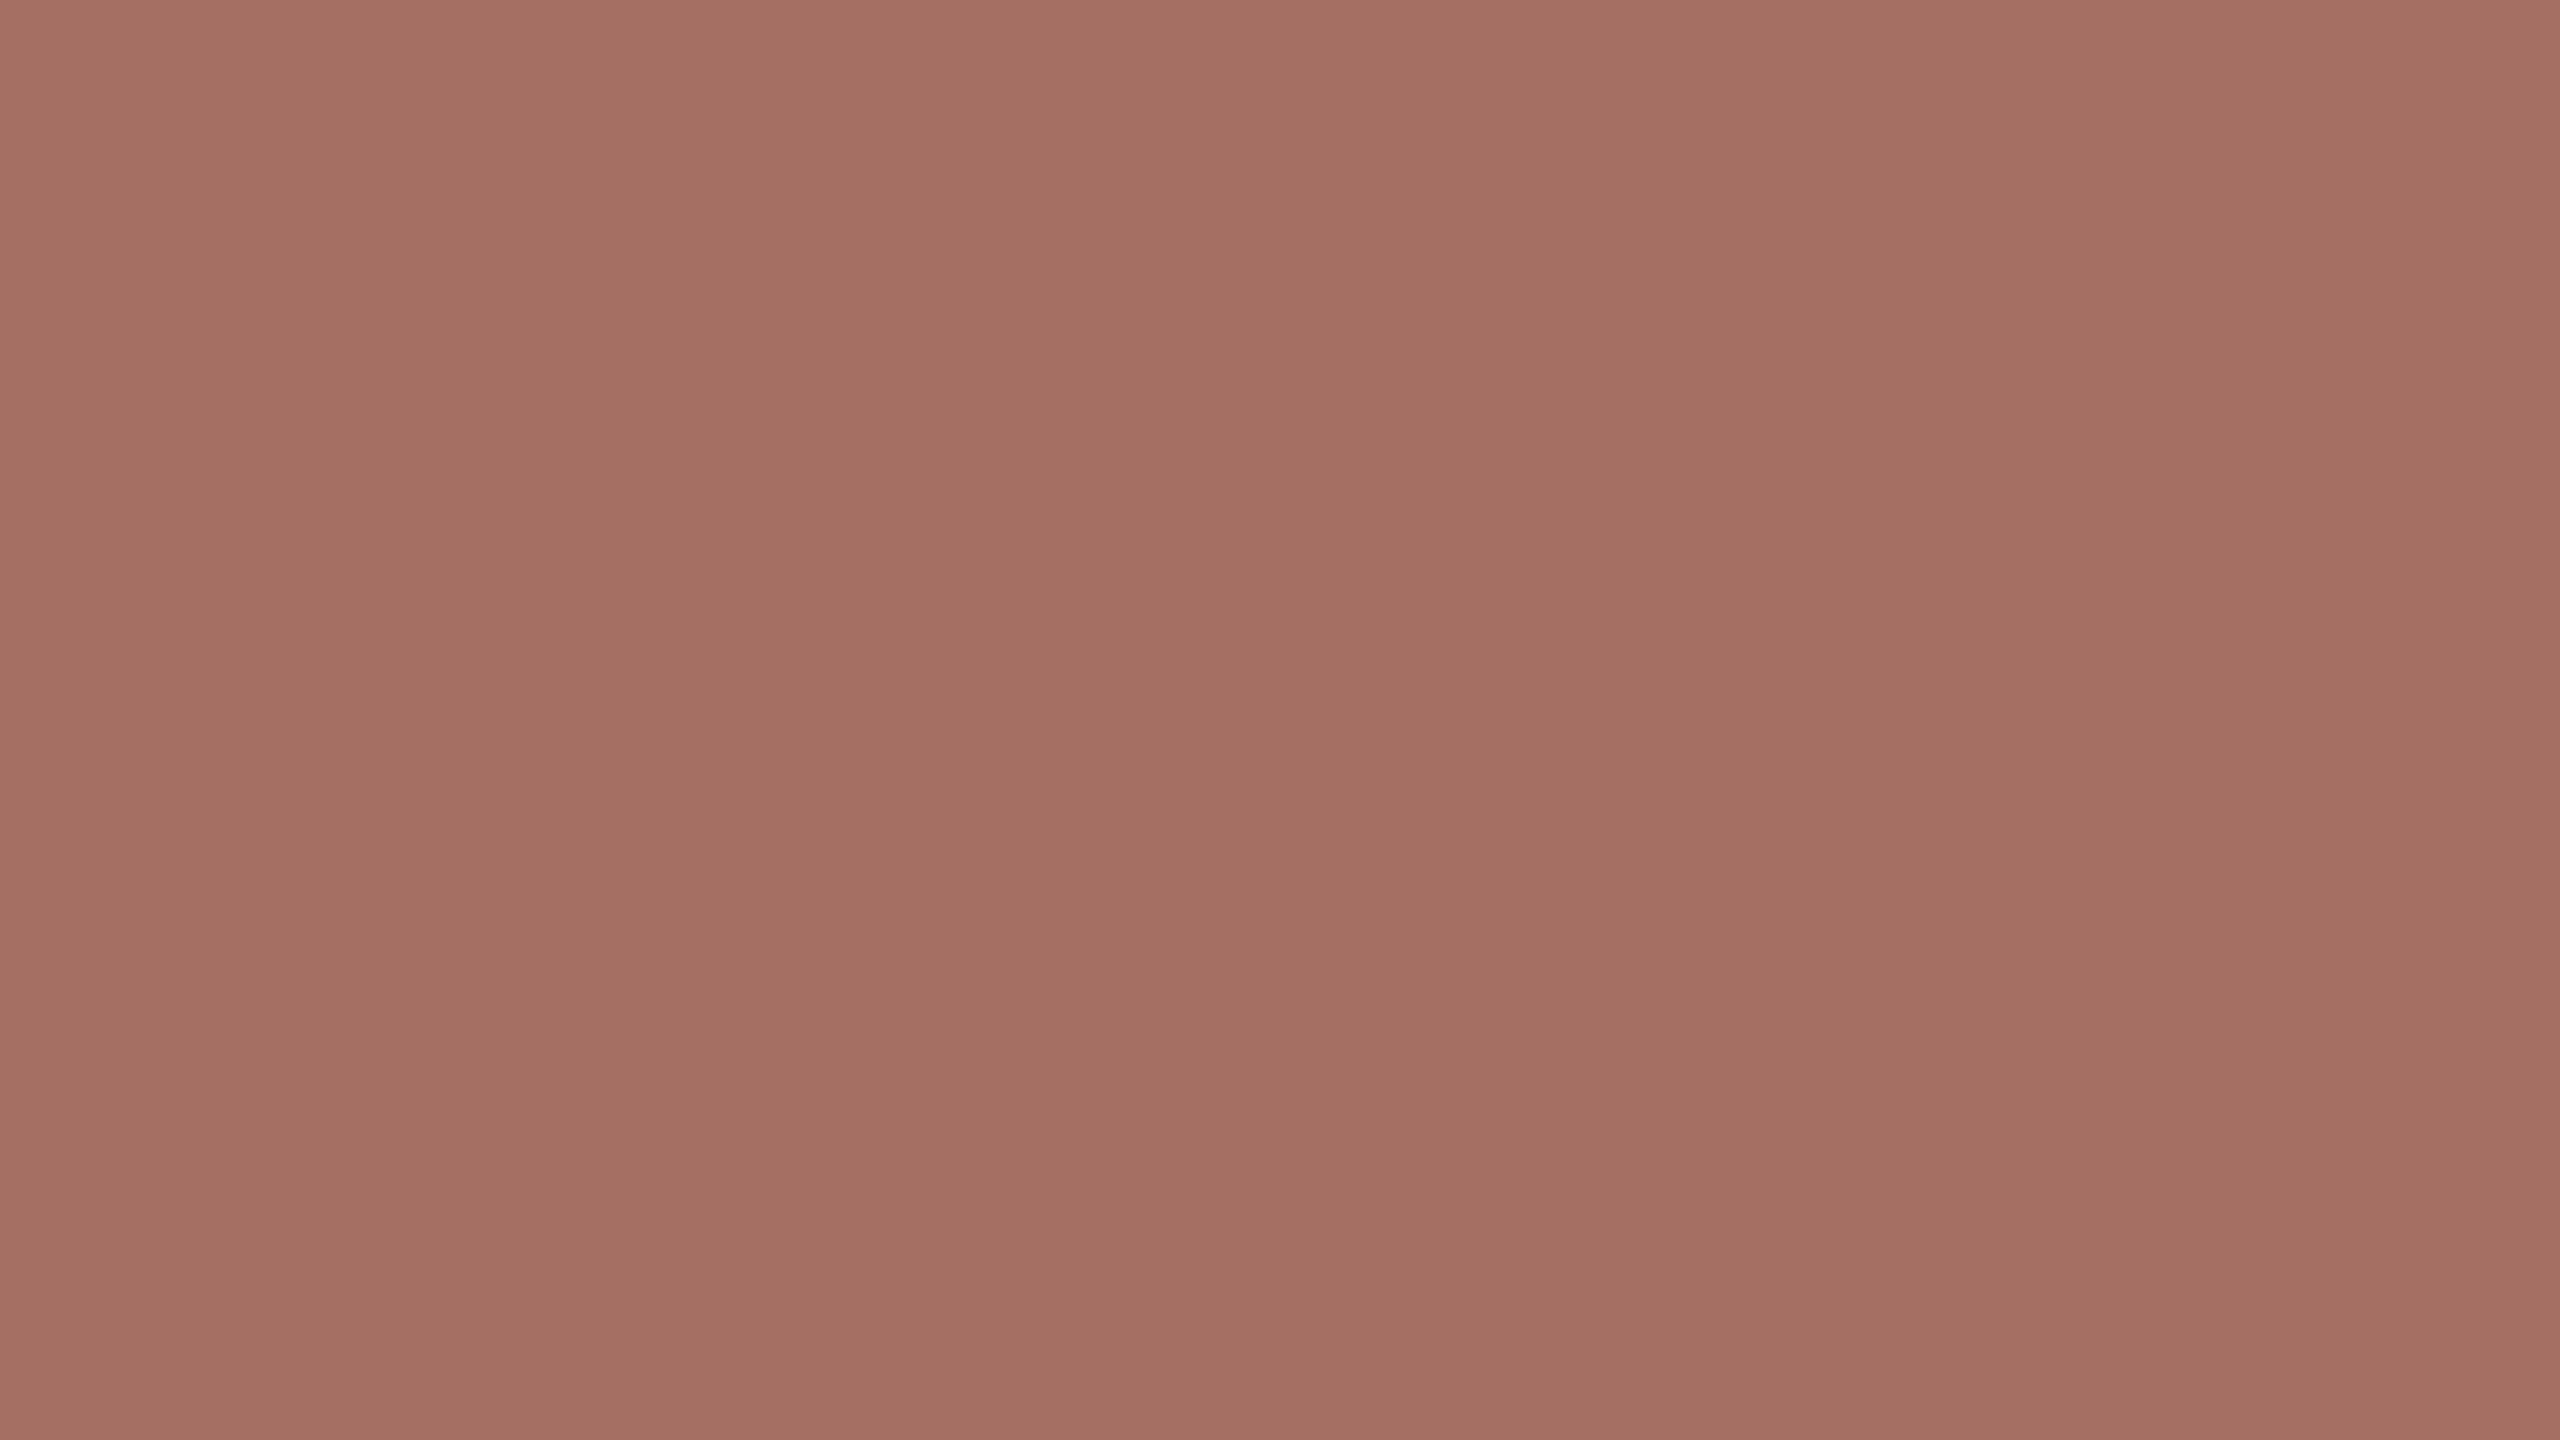 2560x1440 Blast-off Bronze Solid Color Background